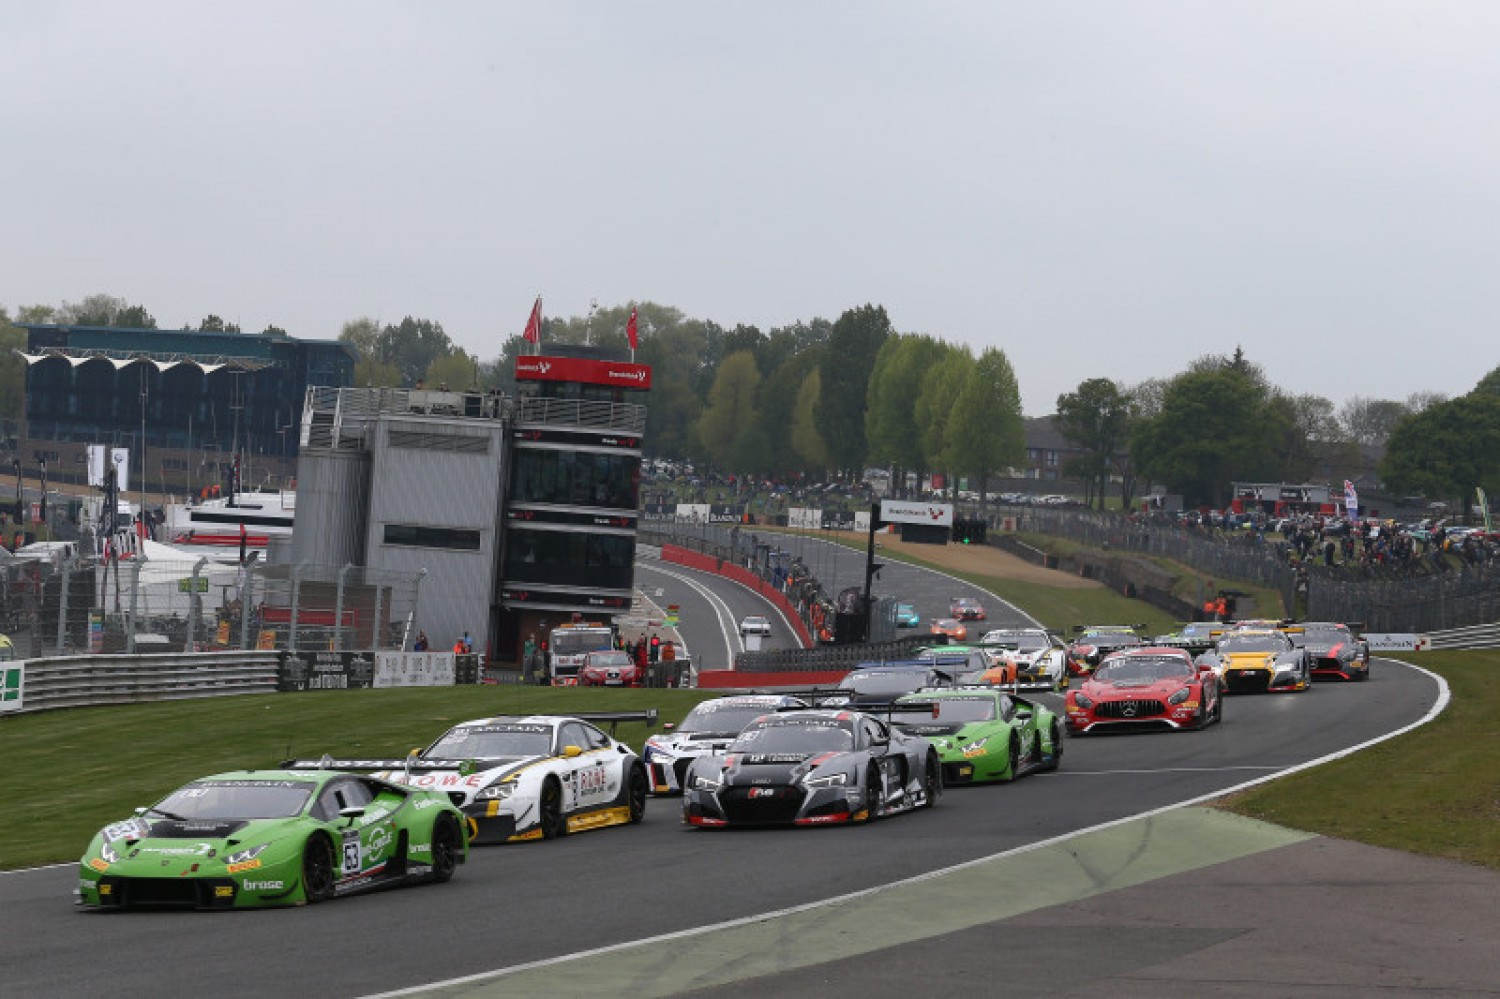 Starting entry list confirmed for Brands Hatch